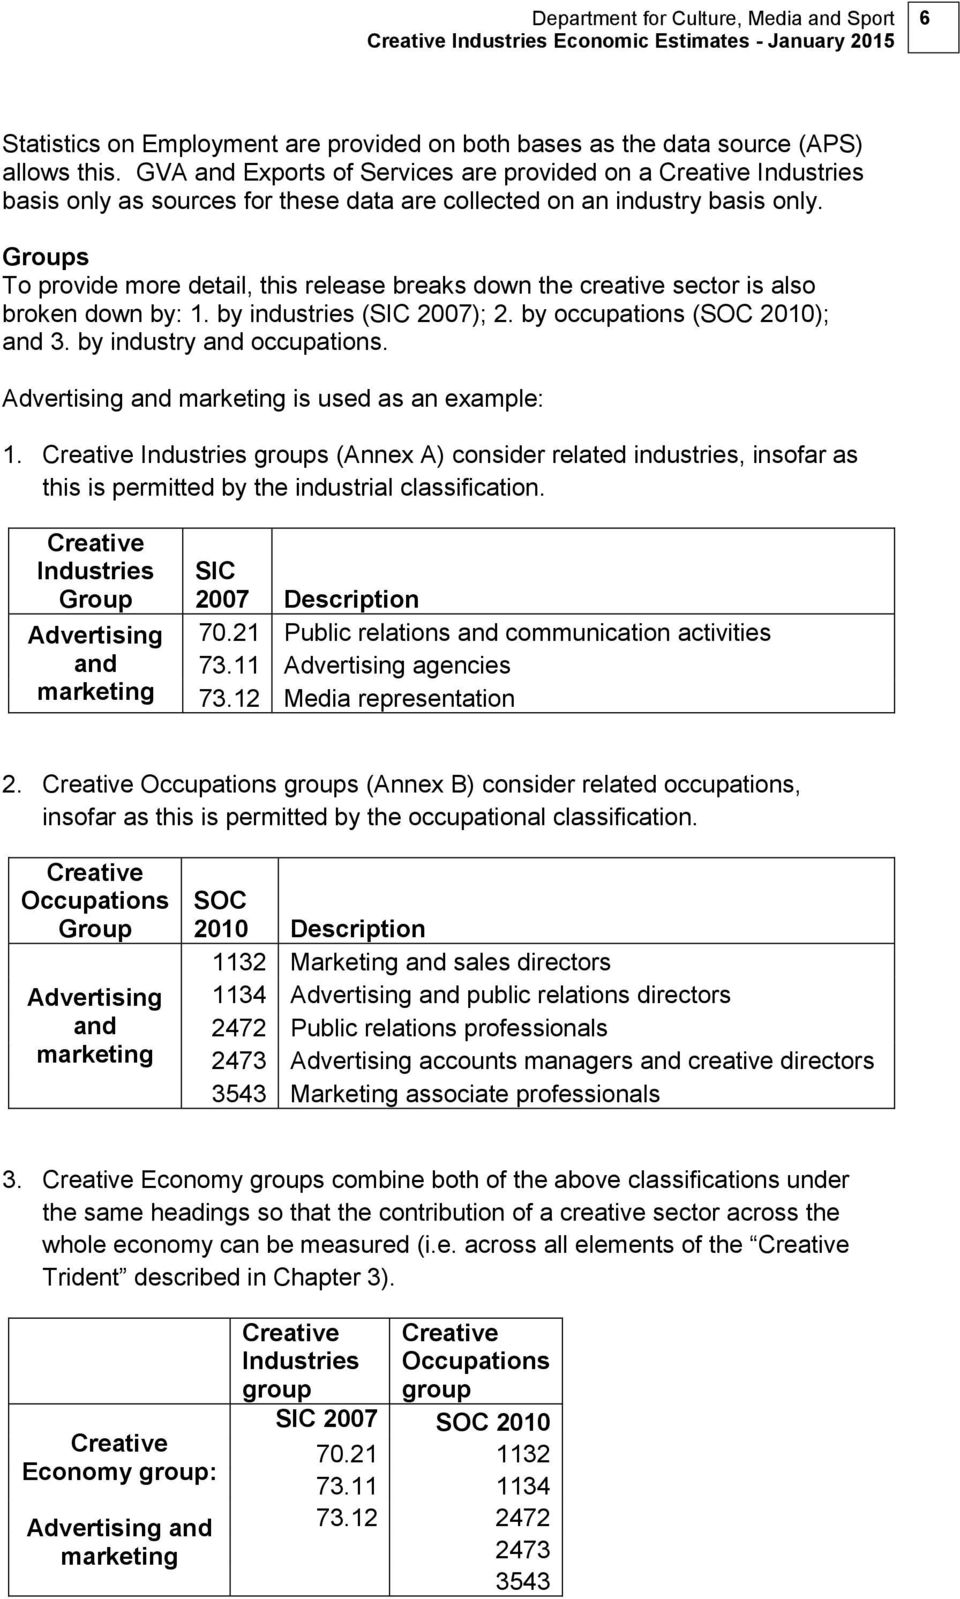 Groups To provide more detail, this release breaks down the creative sector is also broken down by: 1. by industries (SIC 2007); 2. by occupations (SOC 2010); and 3. by industry and occupations.